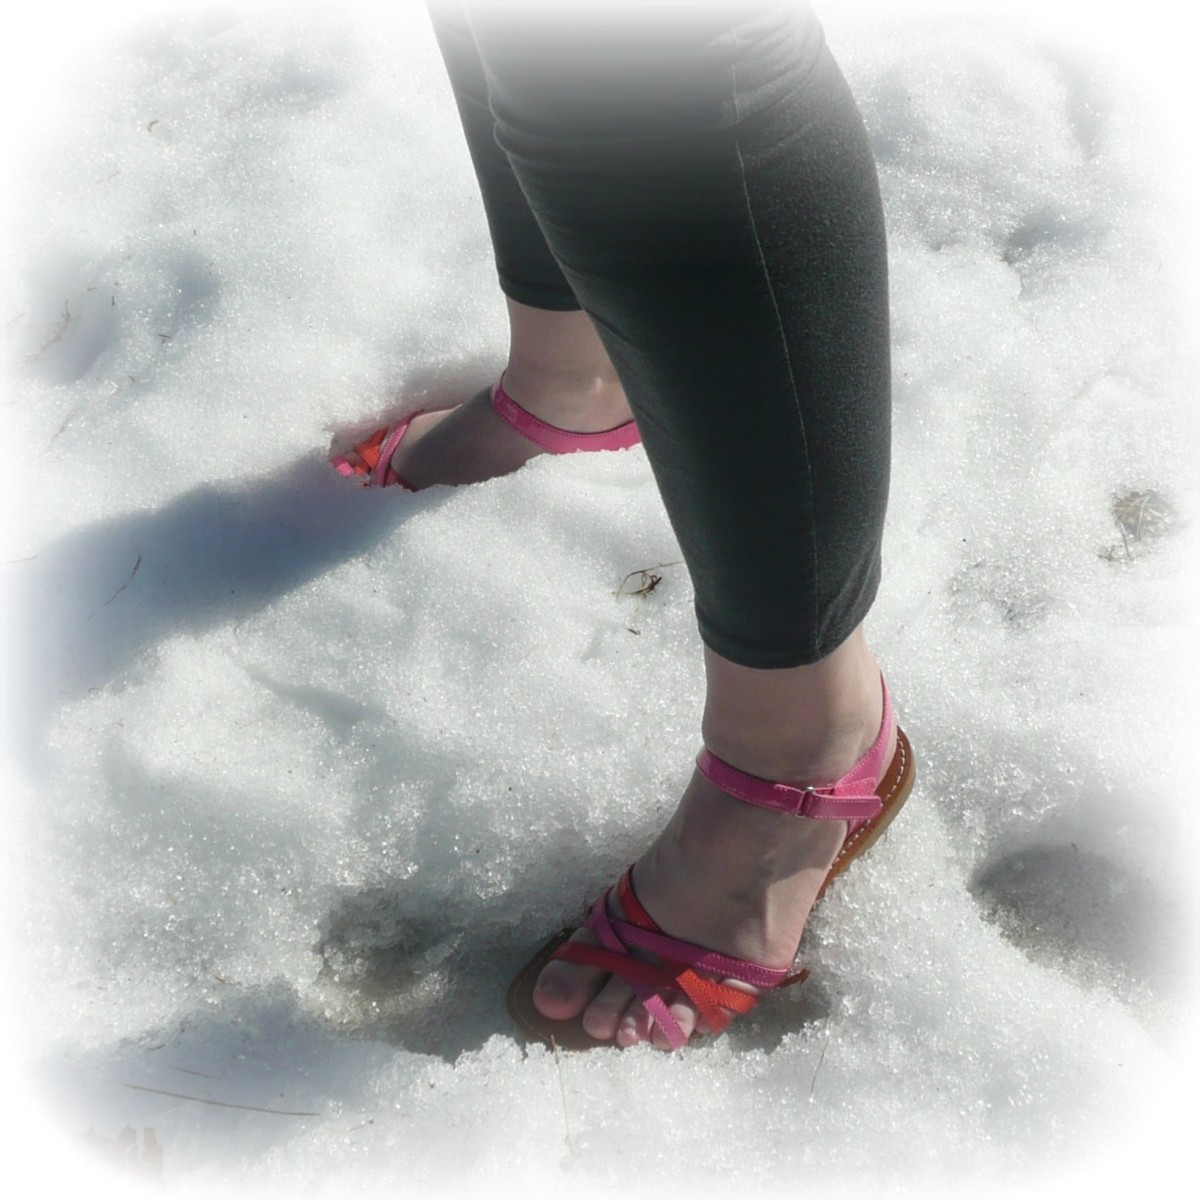 Stay out of the snow when wearing sandals.